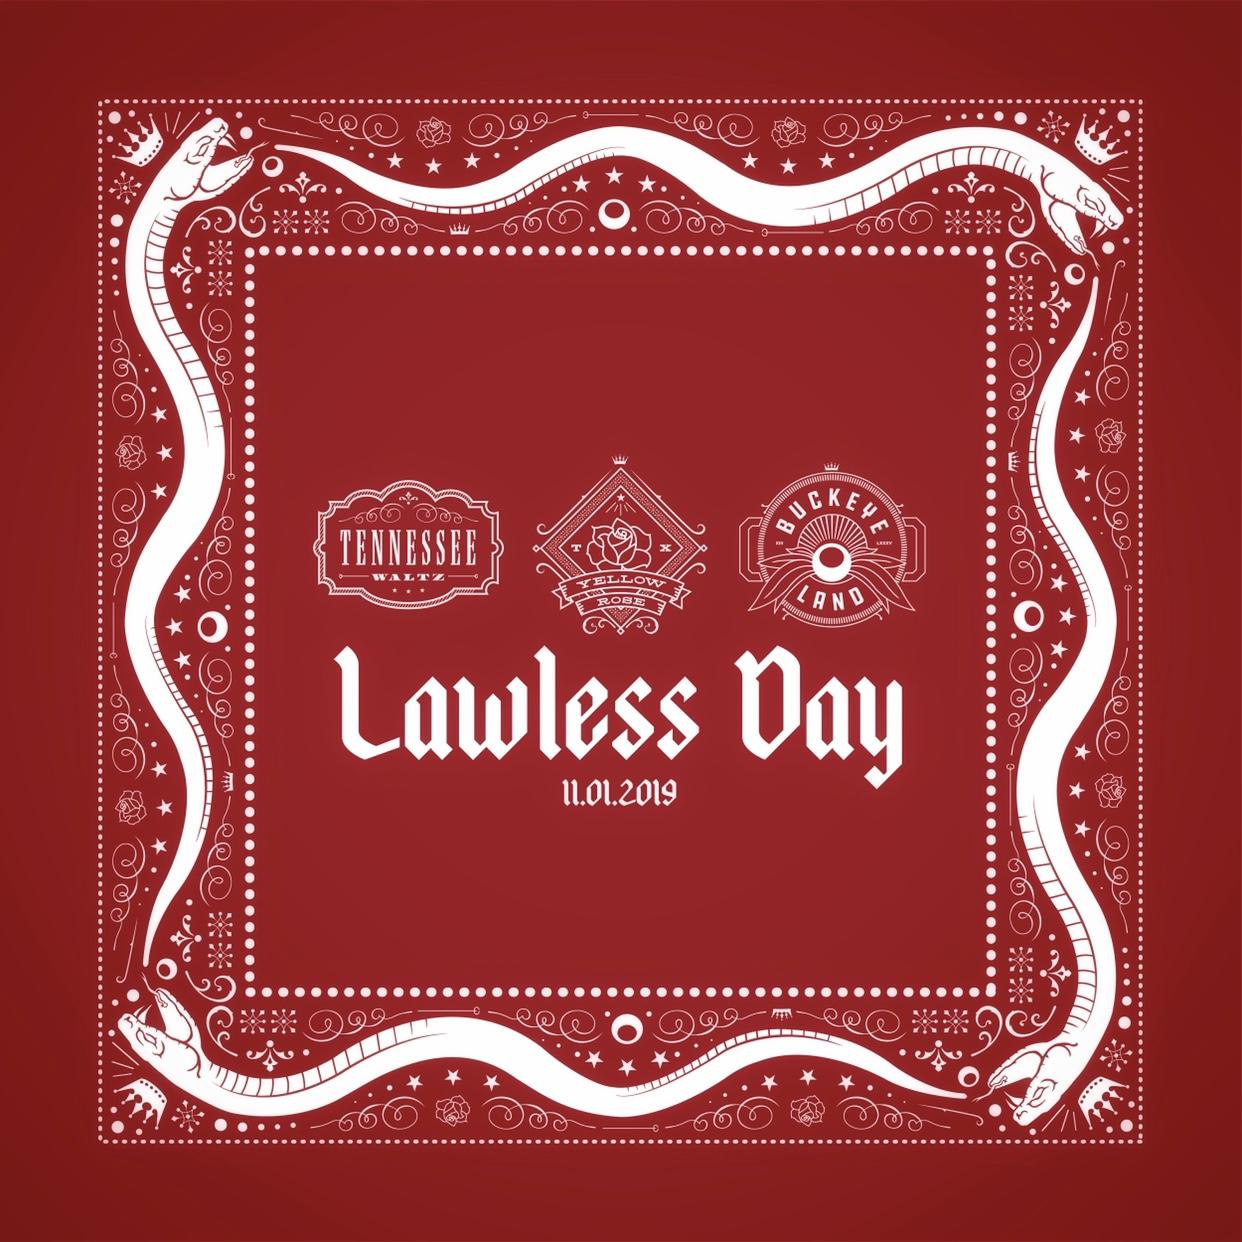 Cigar News: Crowned Heads Lawless Day Returns for 2019